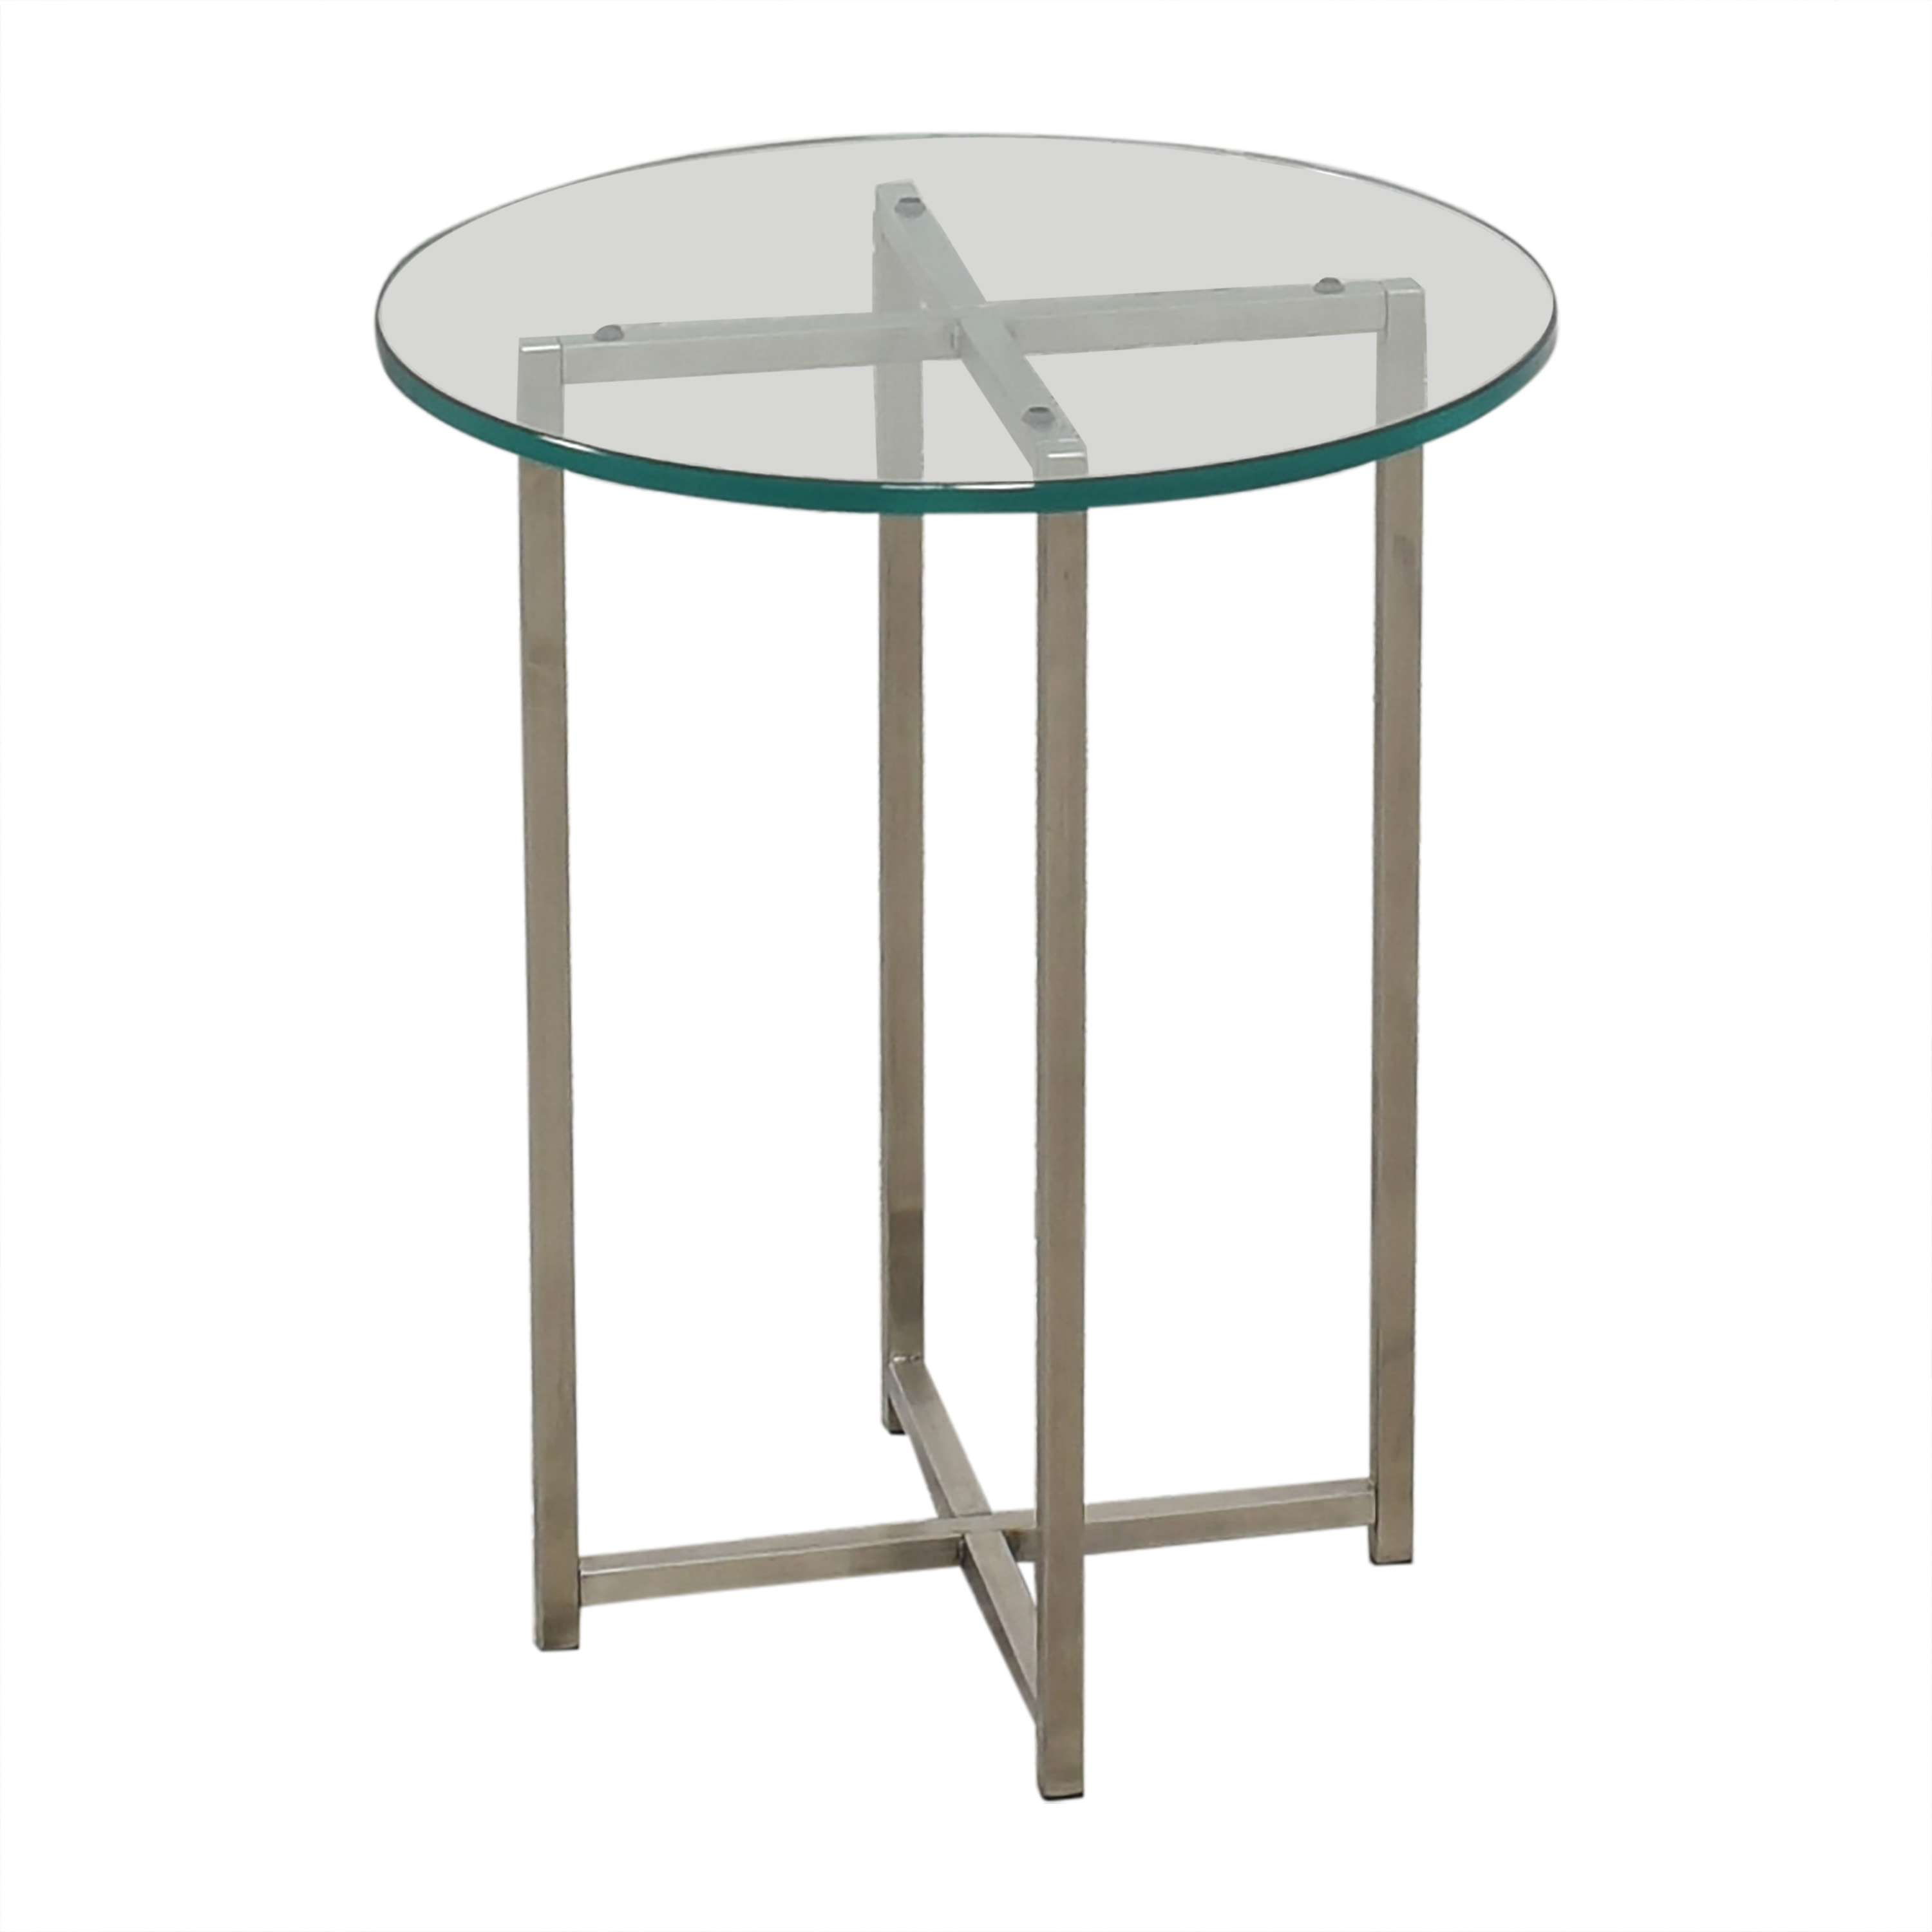 Room & Board Room & Board Classic End Table on sale